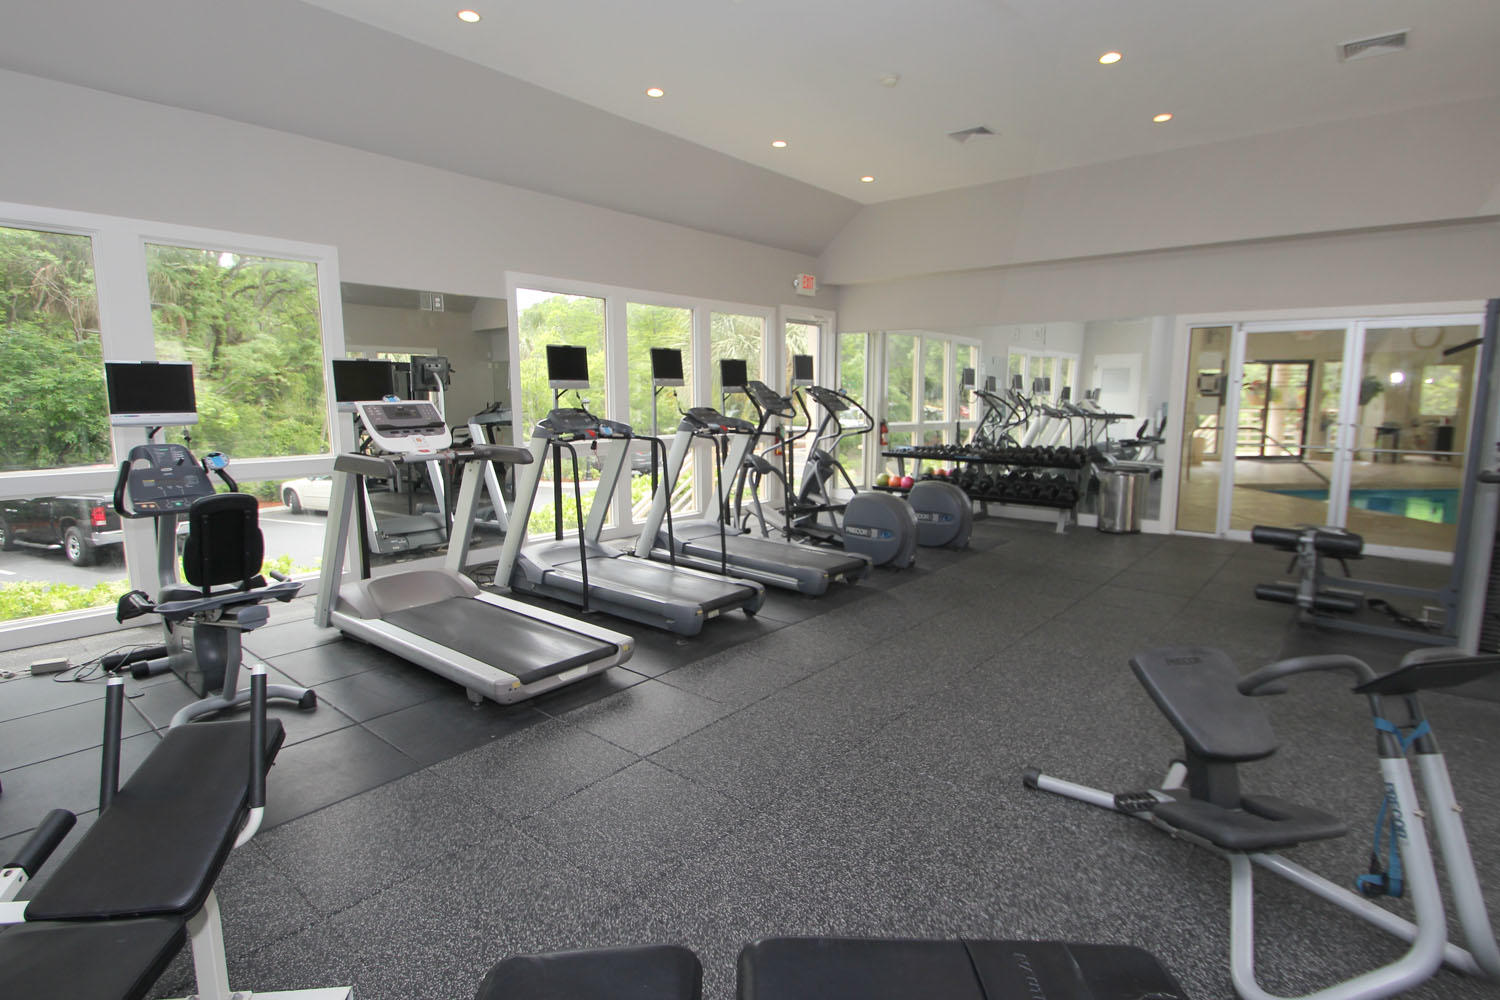 Fitness center at health club